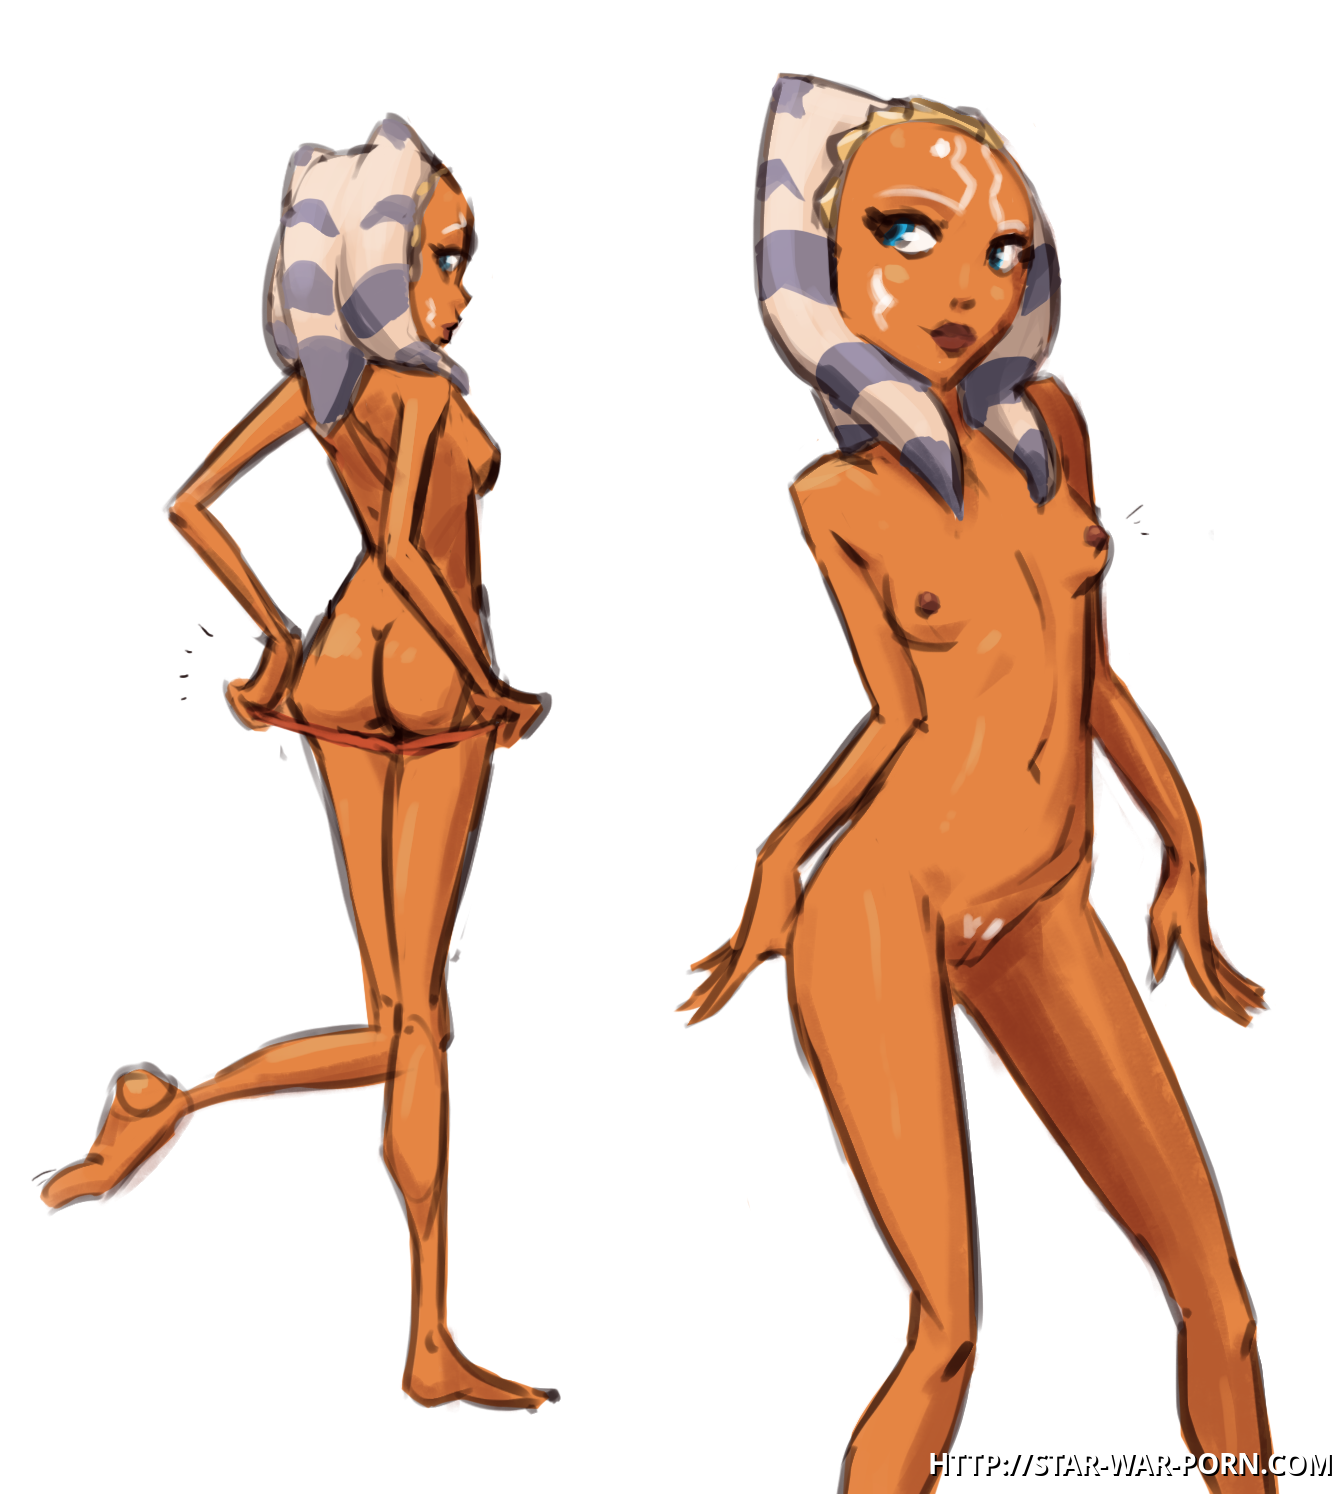 Sexy butt and cute tits - Ahsoka Tano is definitely the hottest jedi padawan ever!